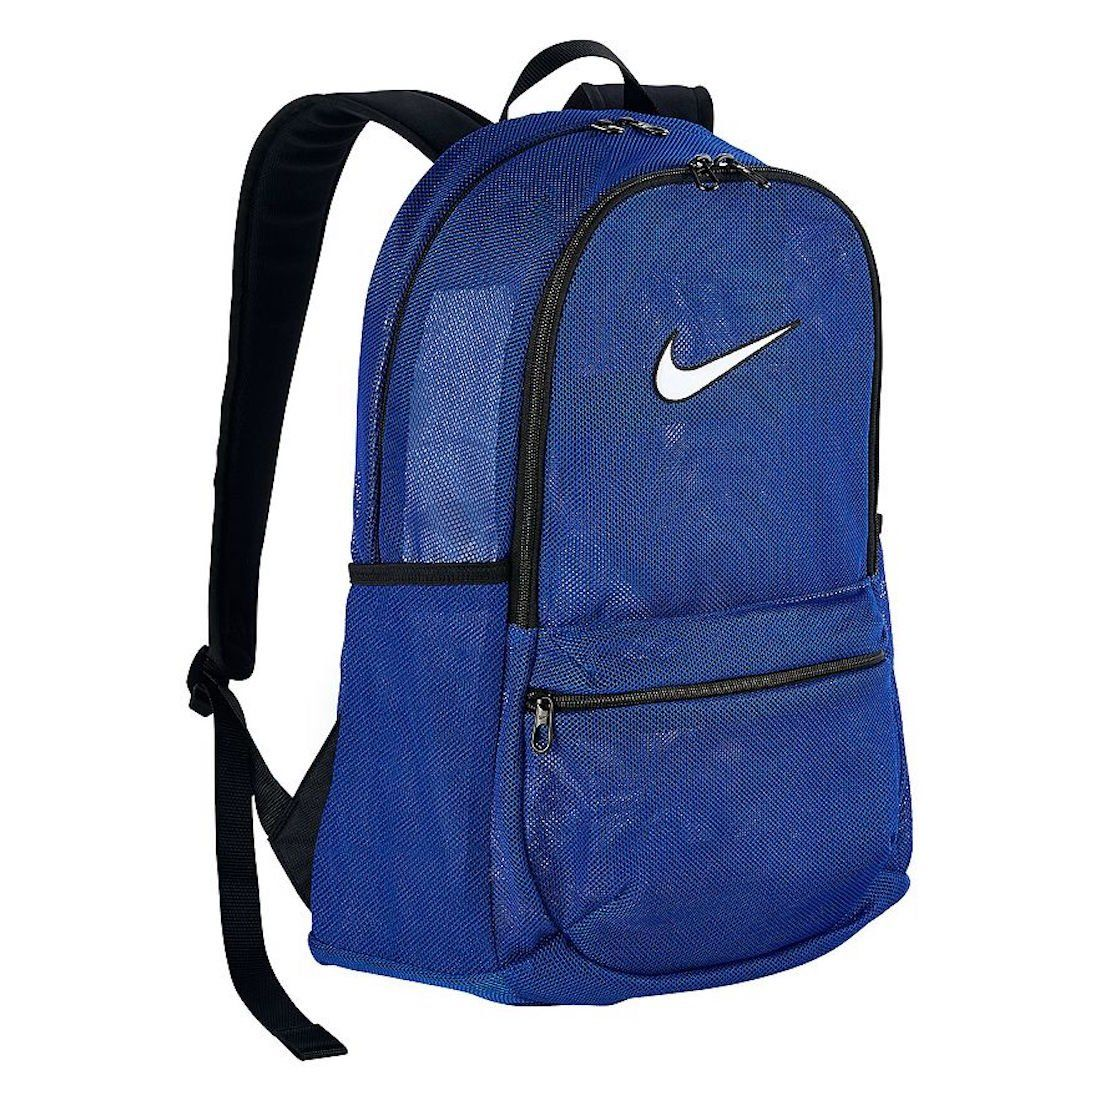 White Nike Mesh Backpack- Fenix Toulouse Handball c673f78403d8f